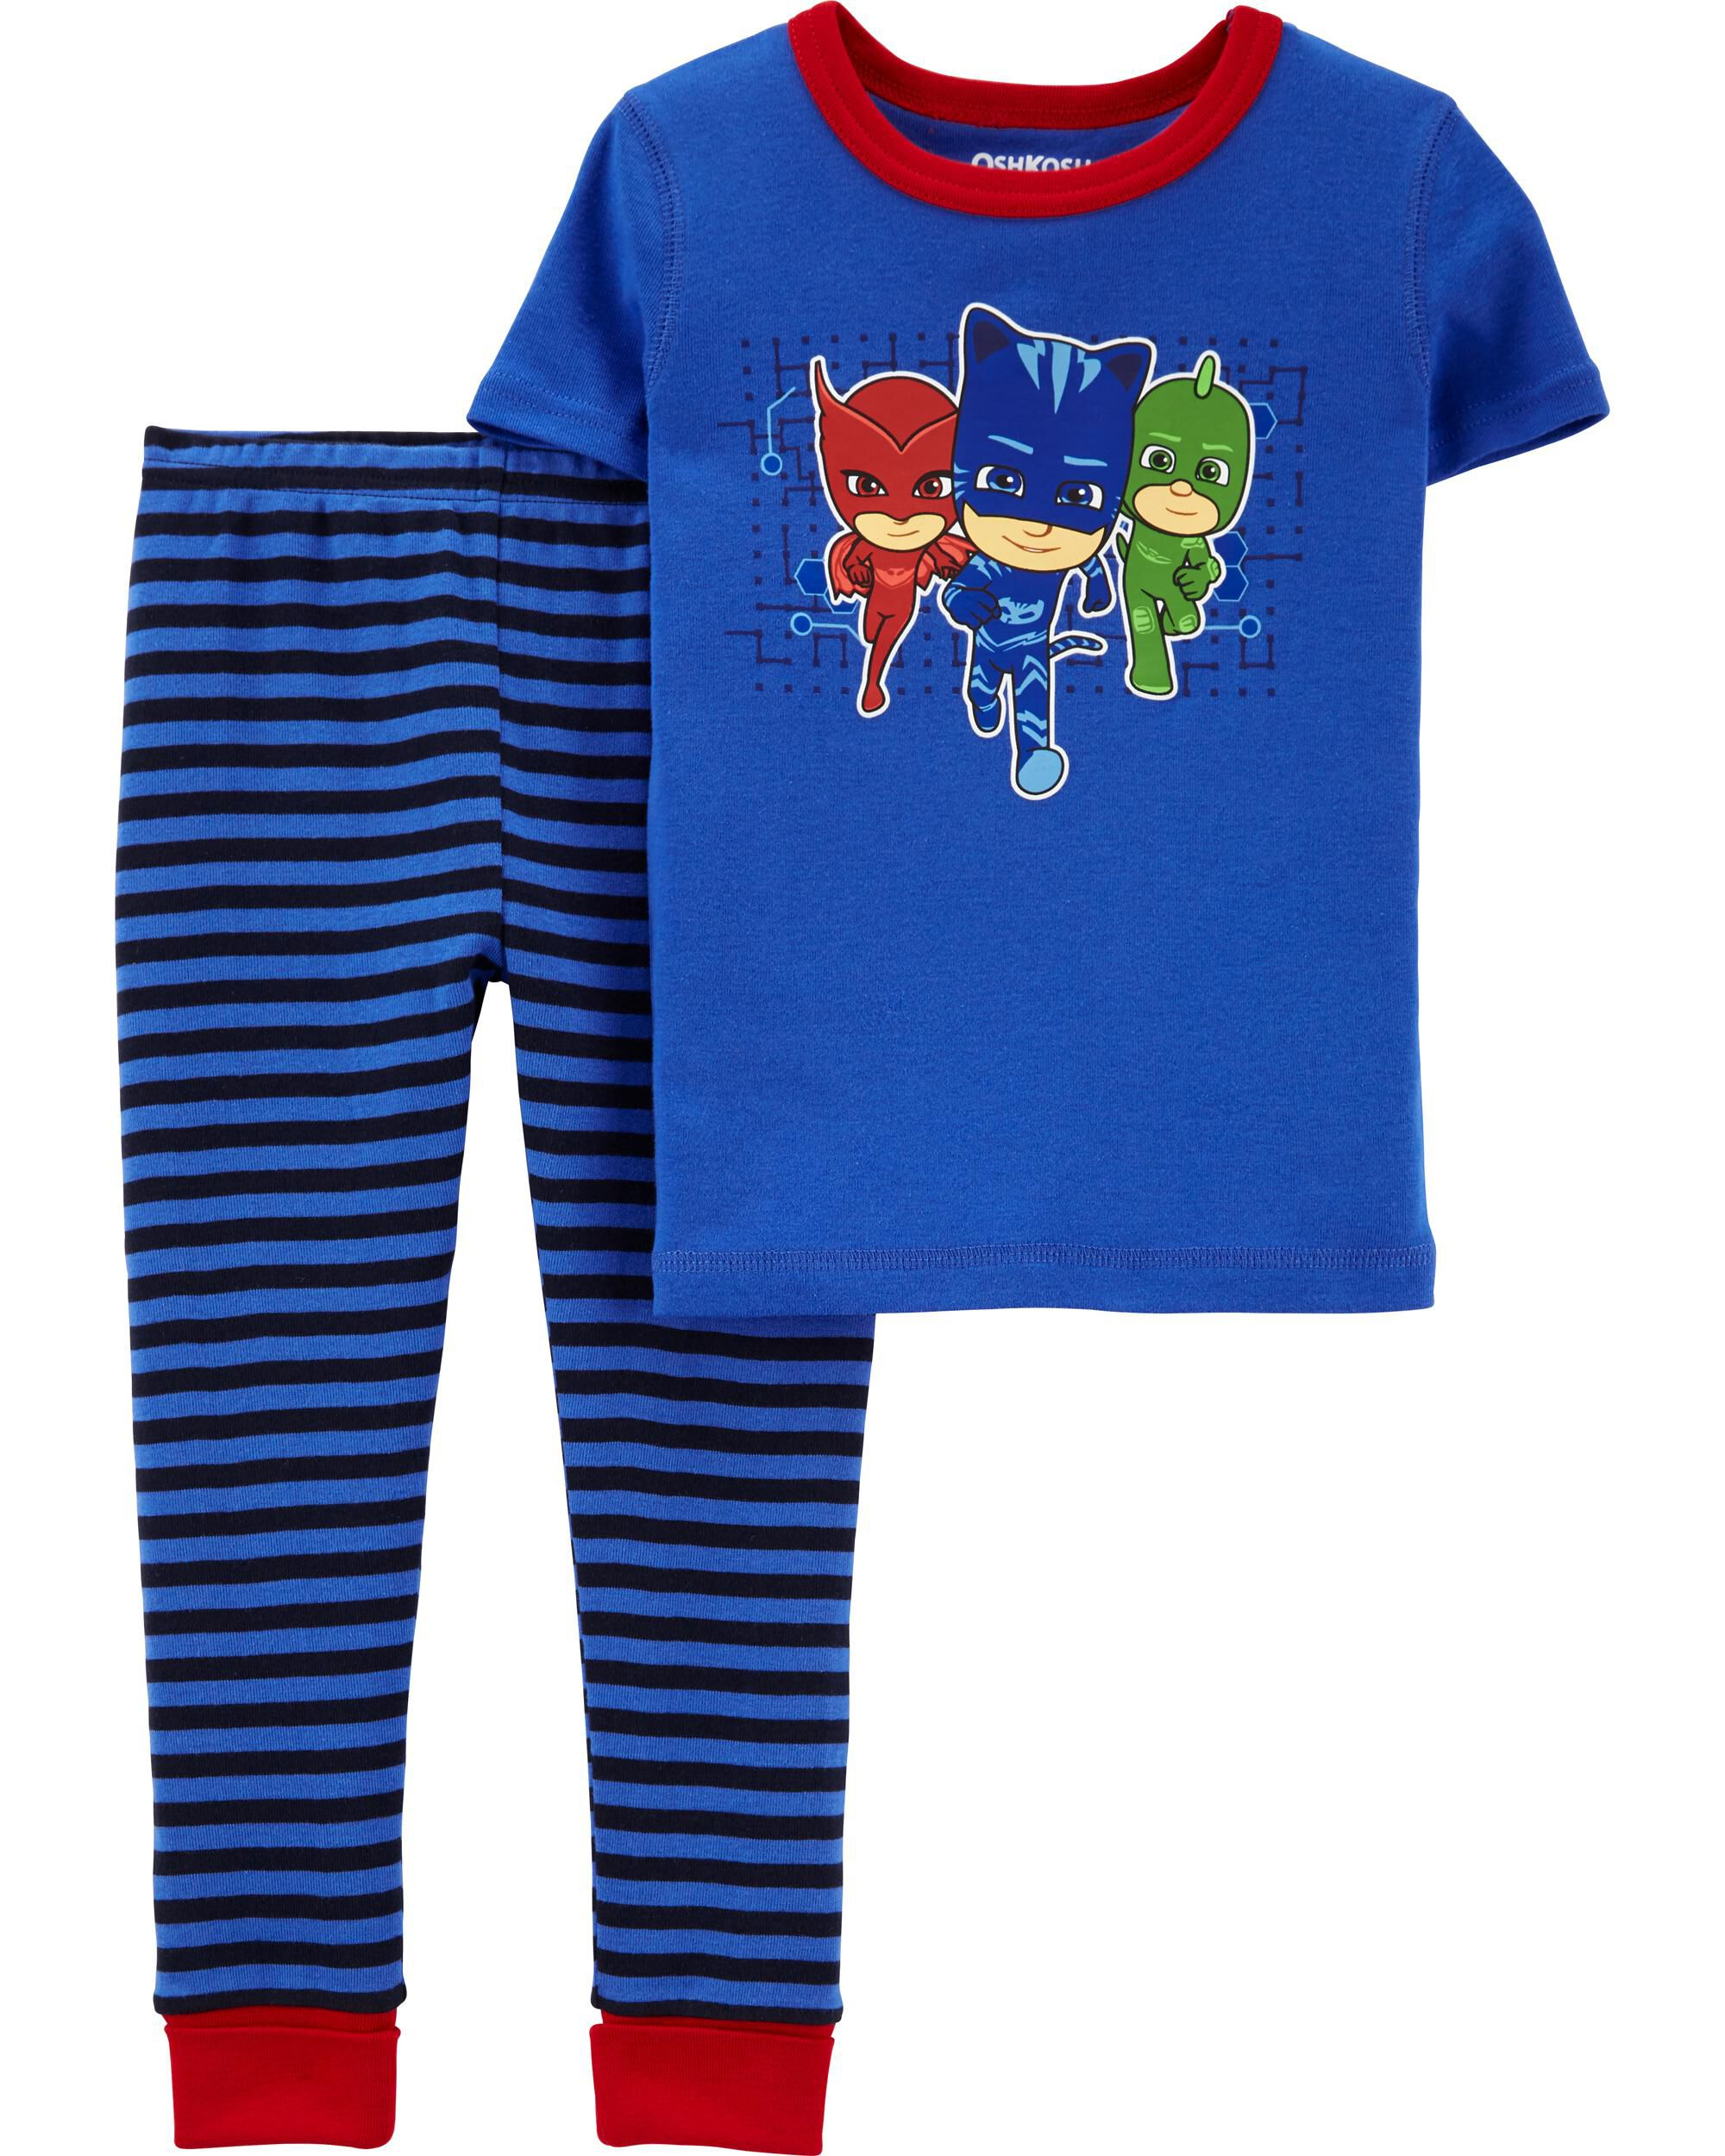 Shorts 3,4,5,6,8 Boys Official Character PJ Masks Short Sleeve Pyjamas,T-shirt